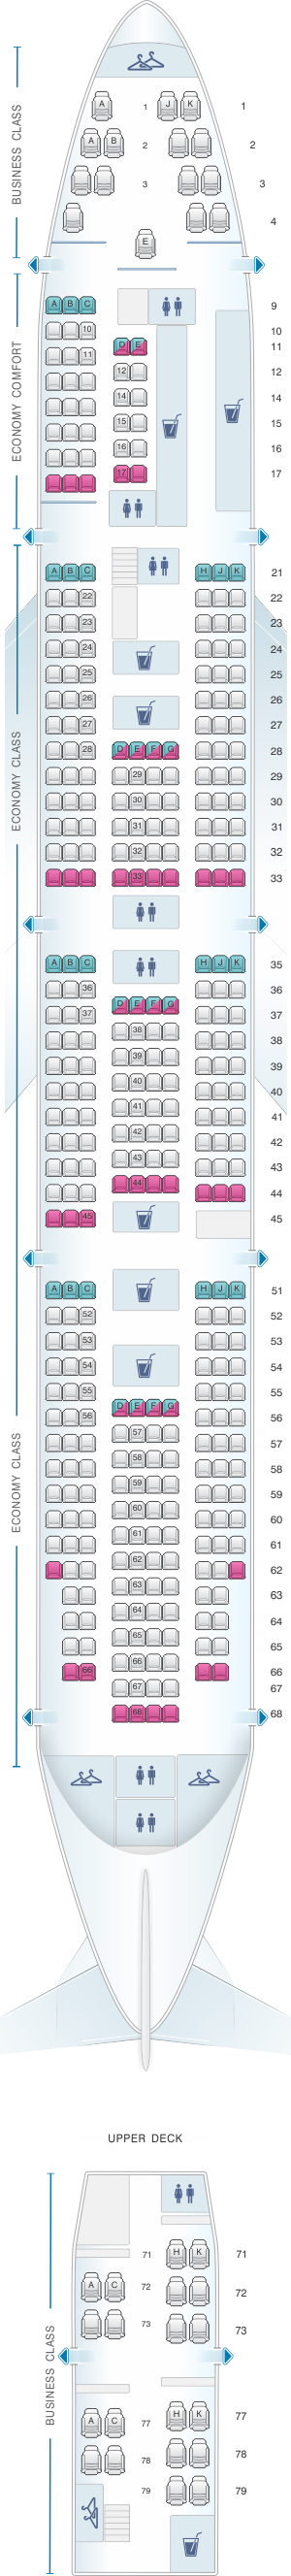 Seat map klm boeing b747 400 new world business class for Plan de cabine boeing 747 400 corsair